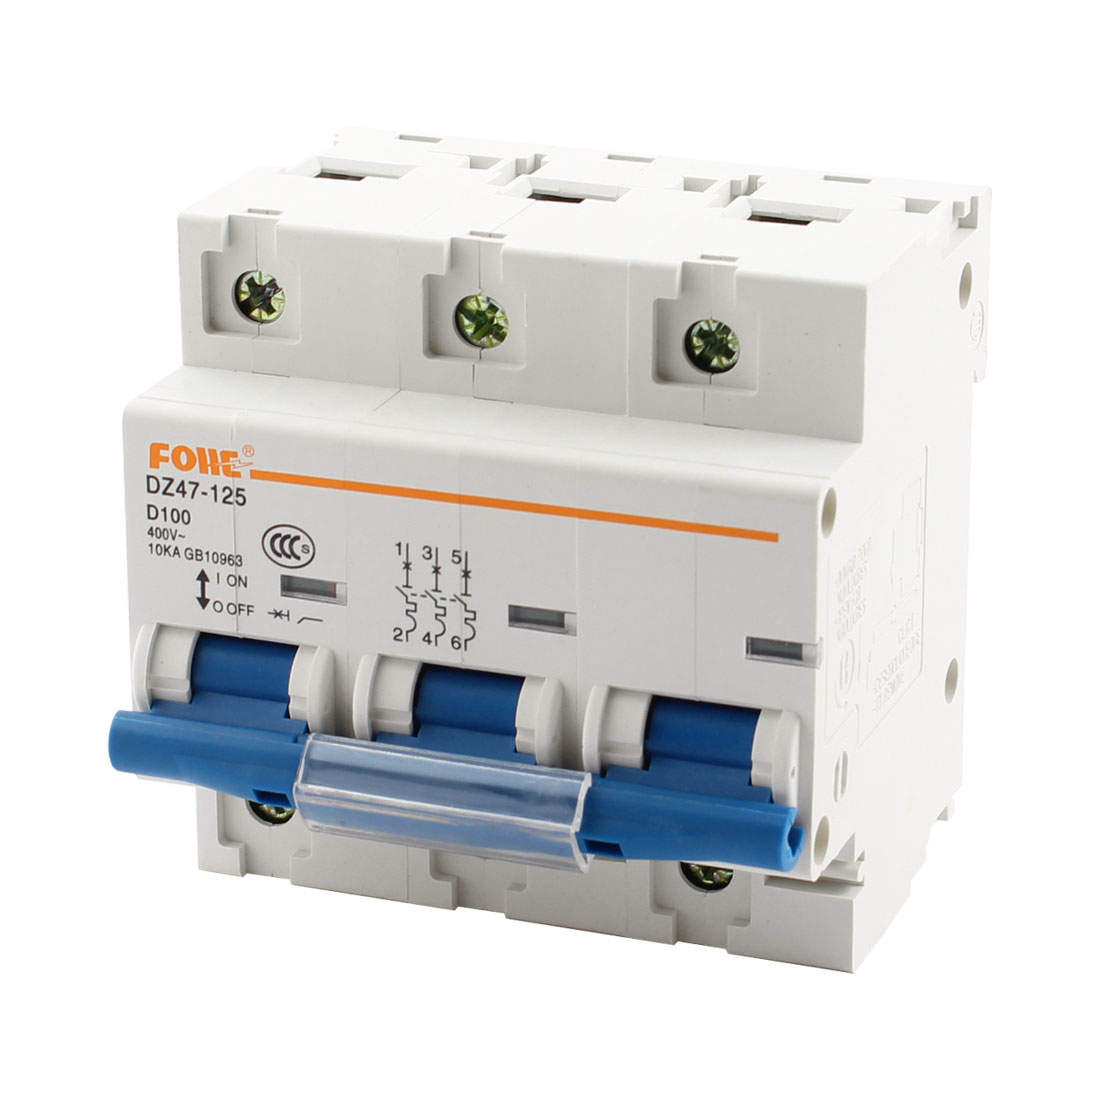 DZ47-125 35mm DIN Rail Mount 3-Pole 6 Screw Terminal MCB Mini Circuit Breaker Overload Protection AC400V 100A